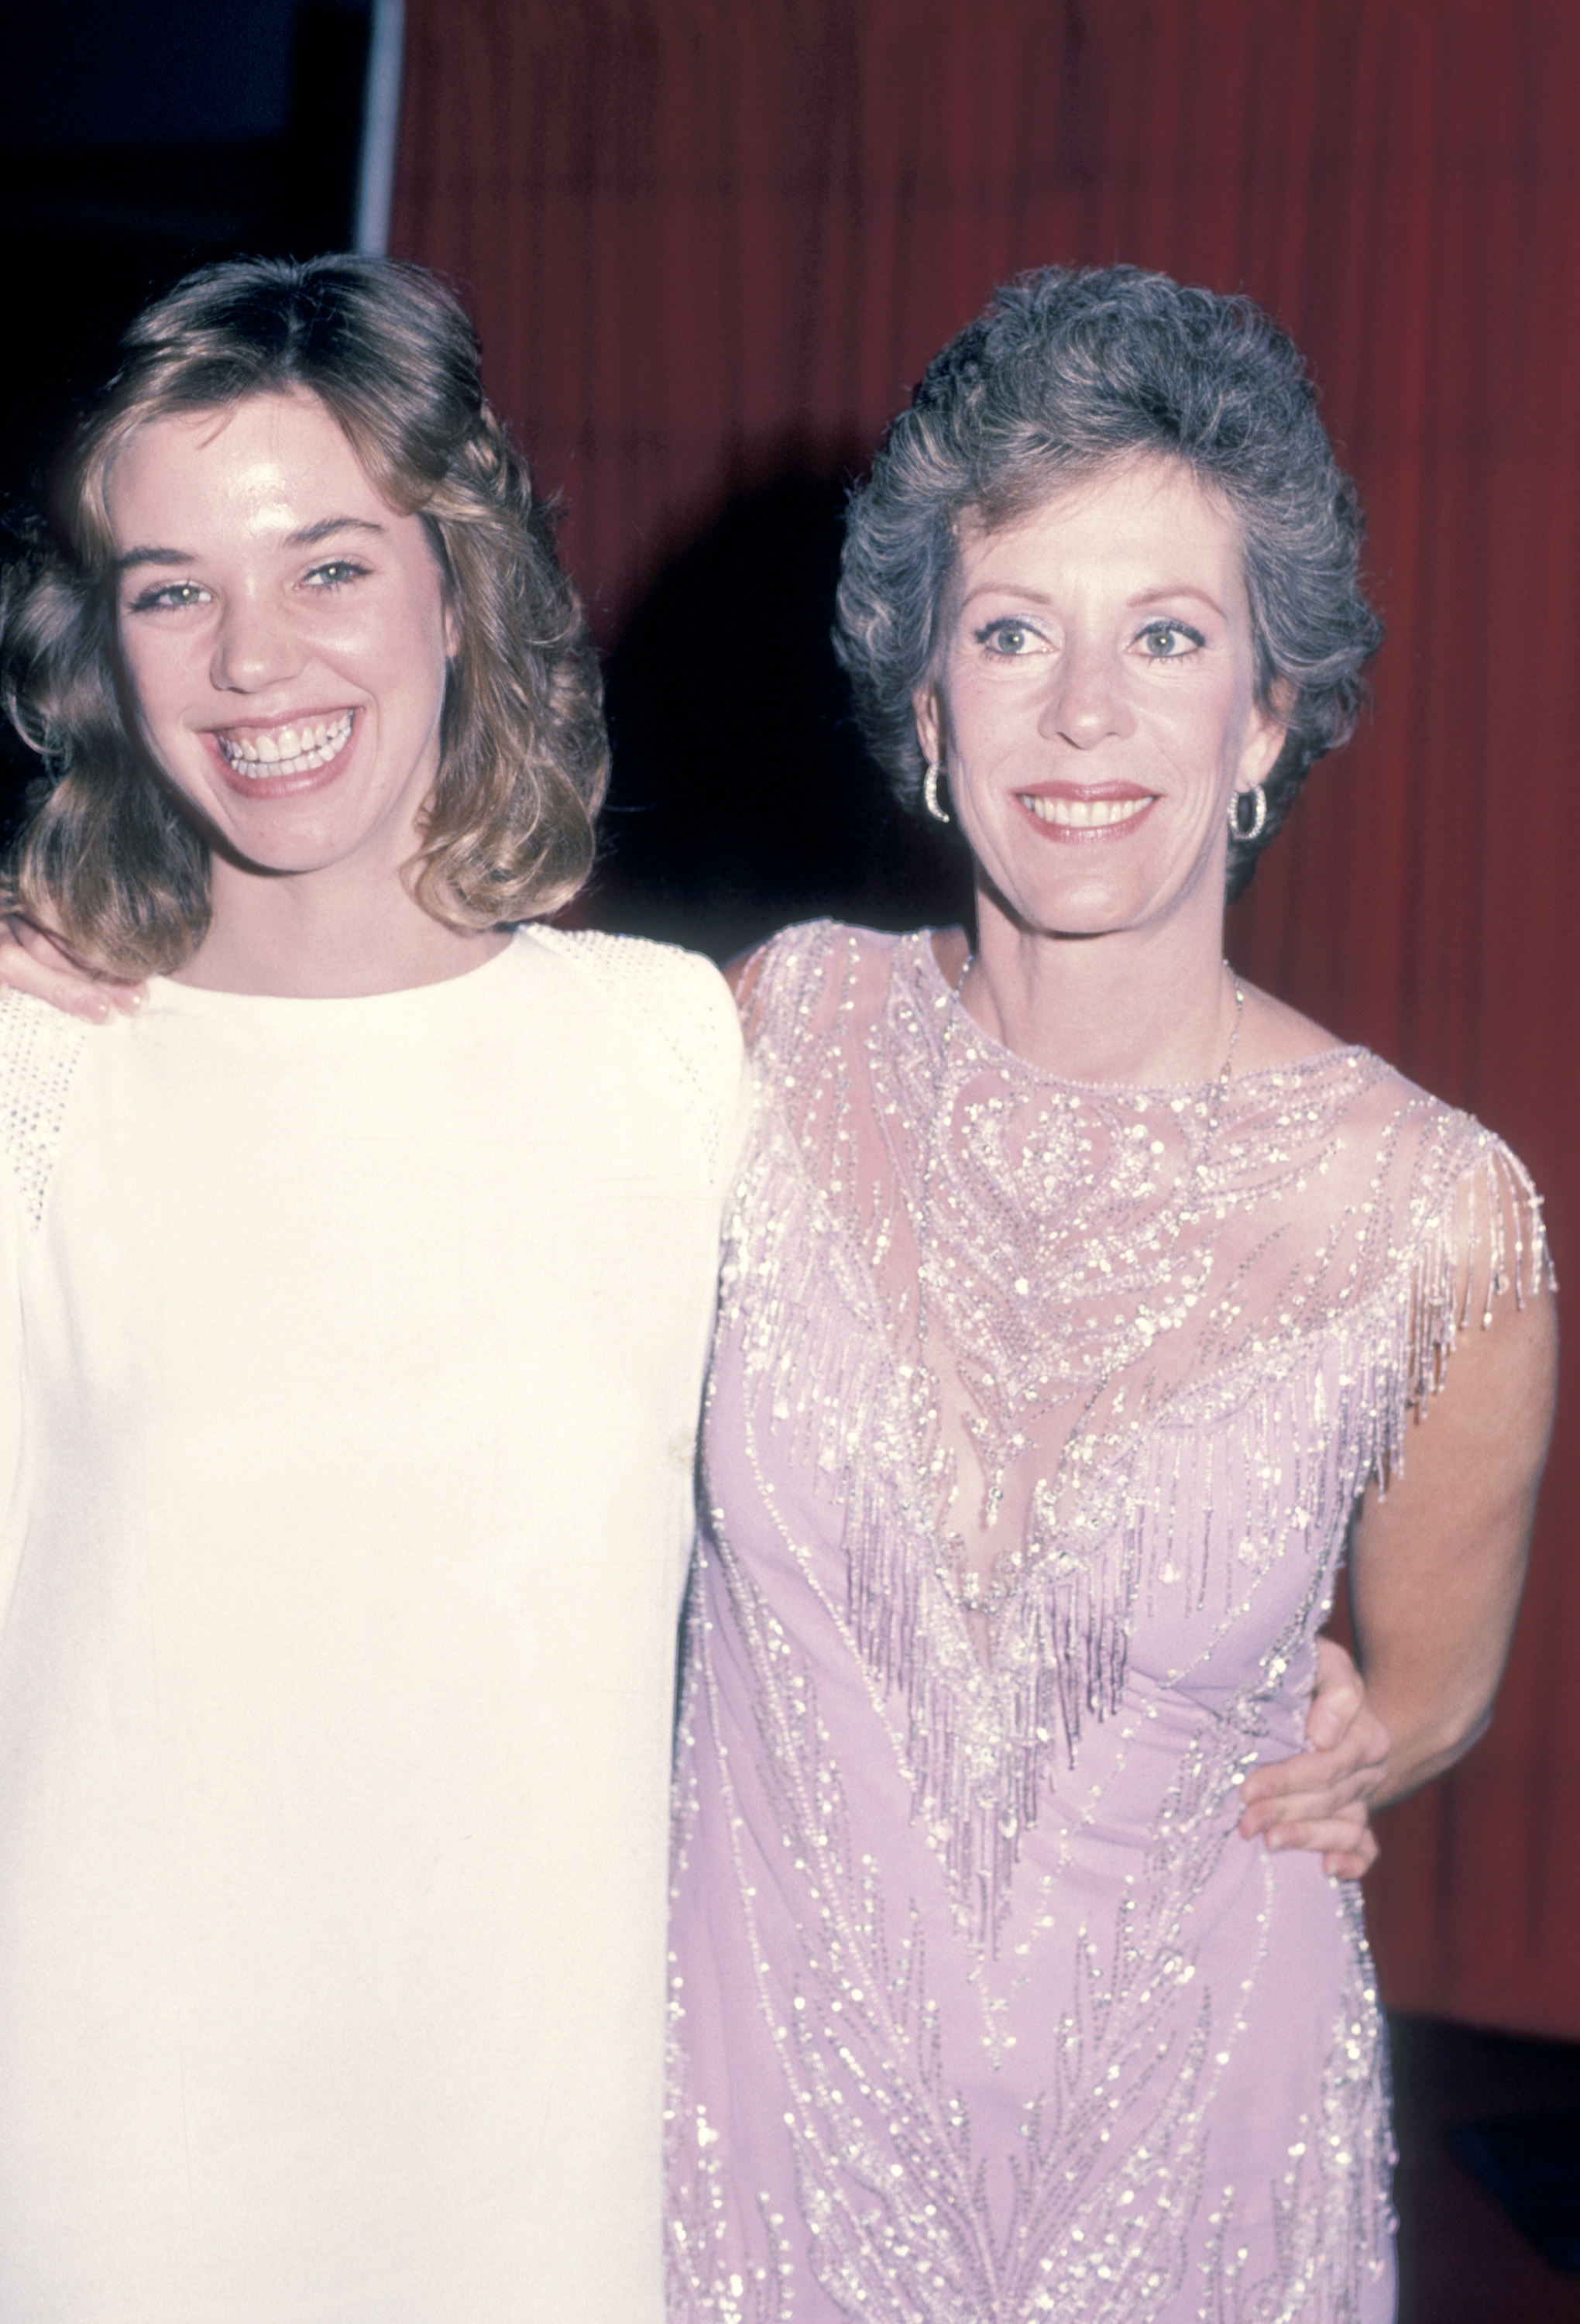 Carol Burnett Talks Her Daughter Death Carol burnett also gave her daughter advice about how to deal with her stage fright. https www womansworld com posts aging carol burnett talks her daughter death 159323